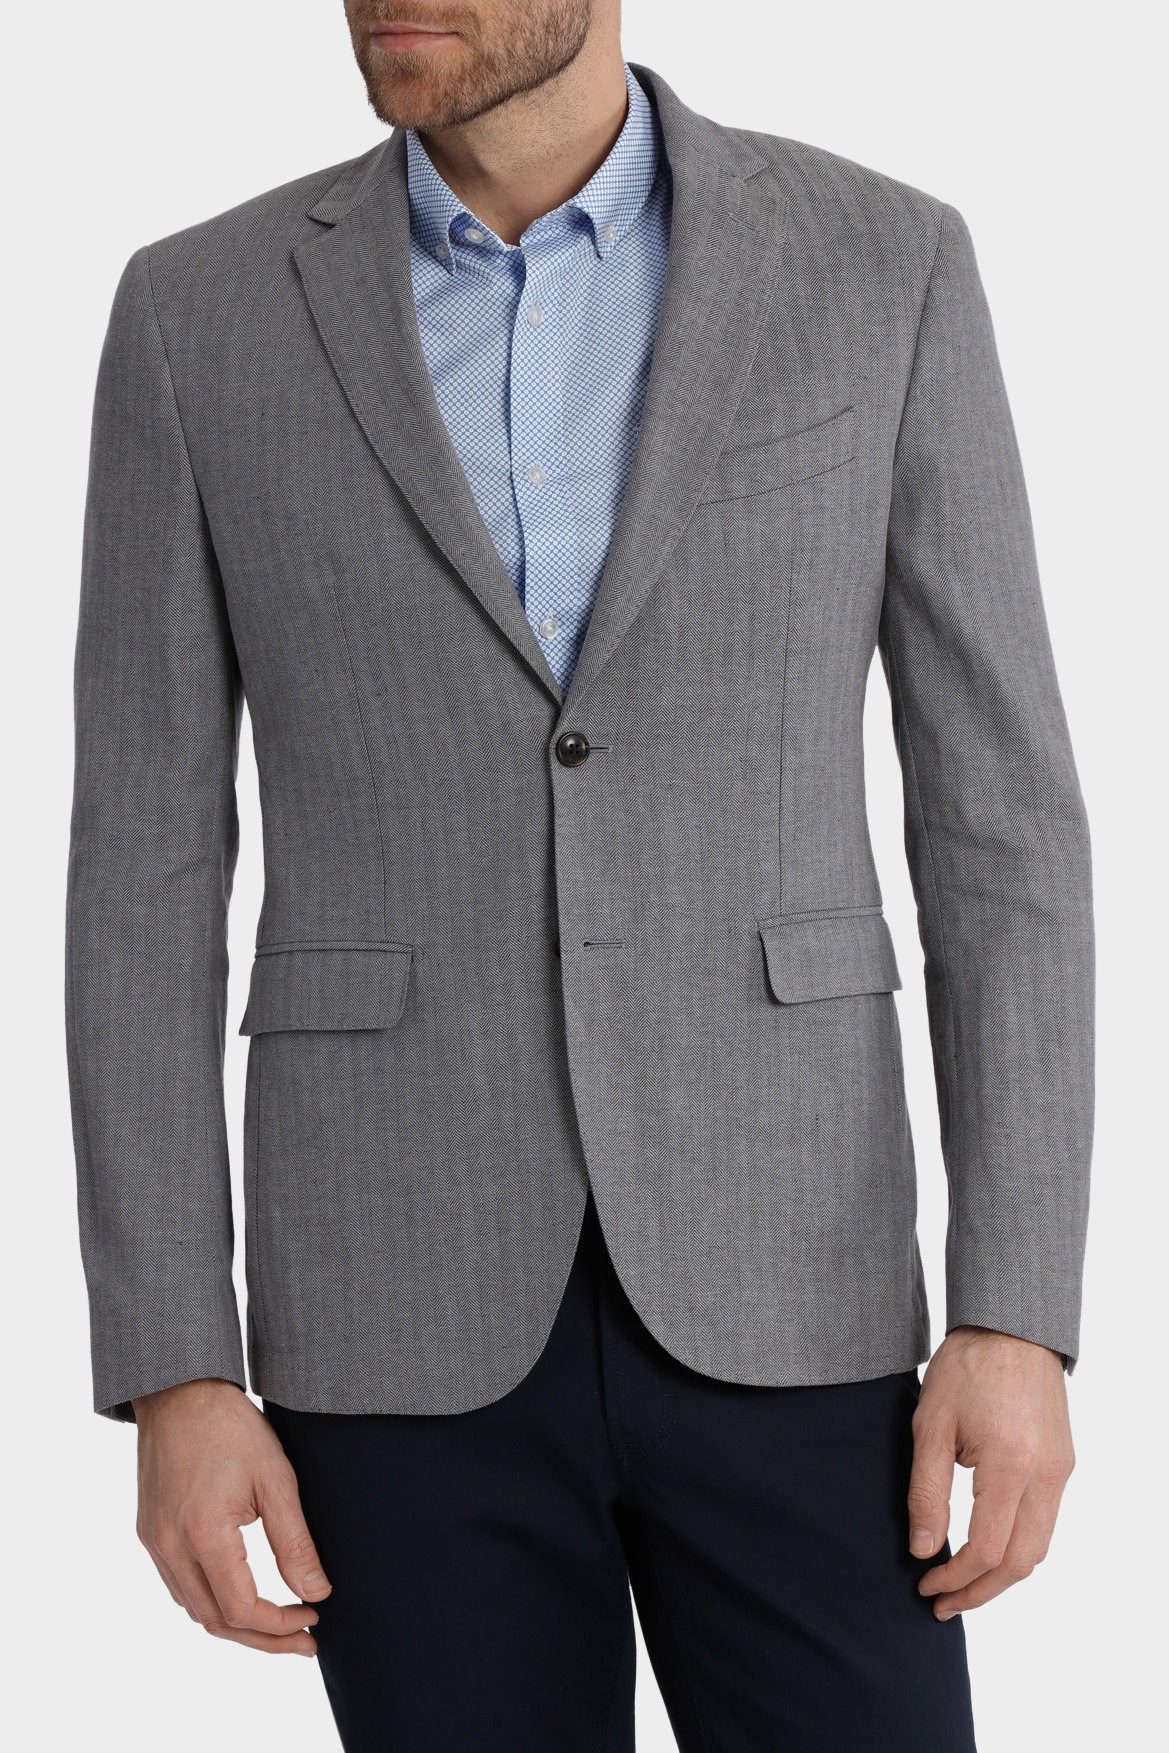 Trent Nathan - The Herring Blazer